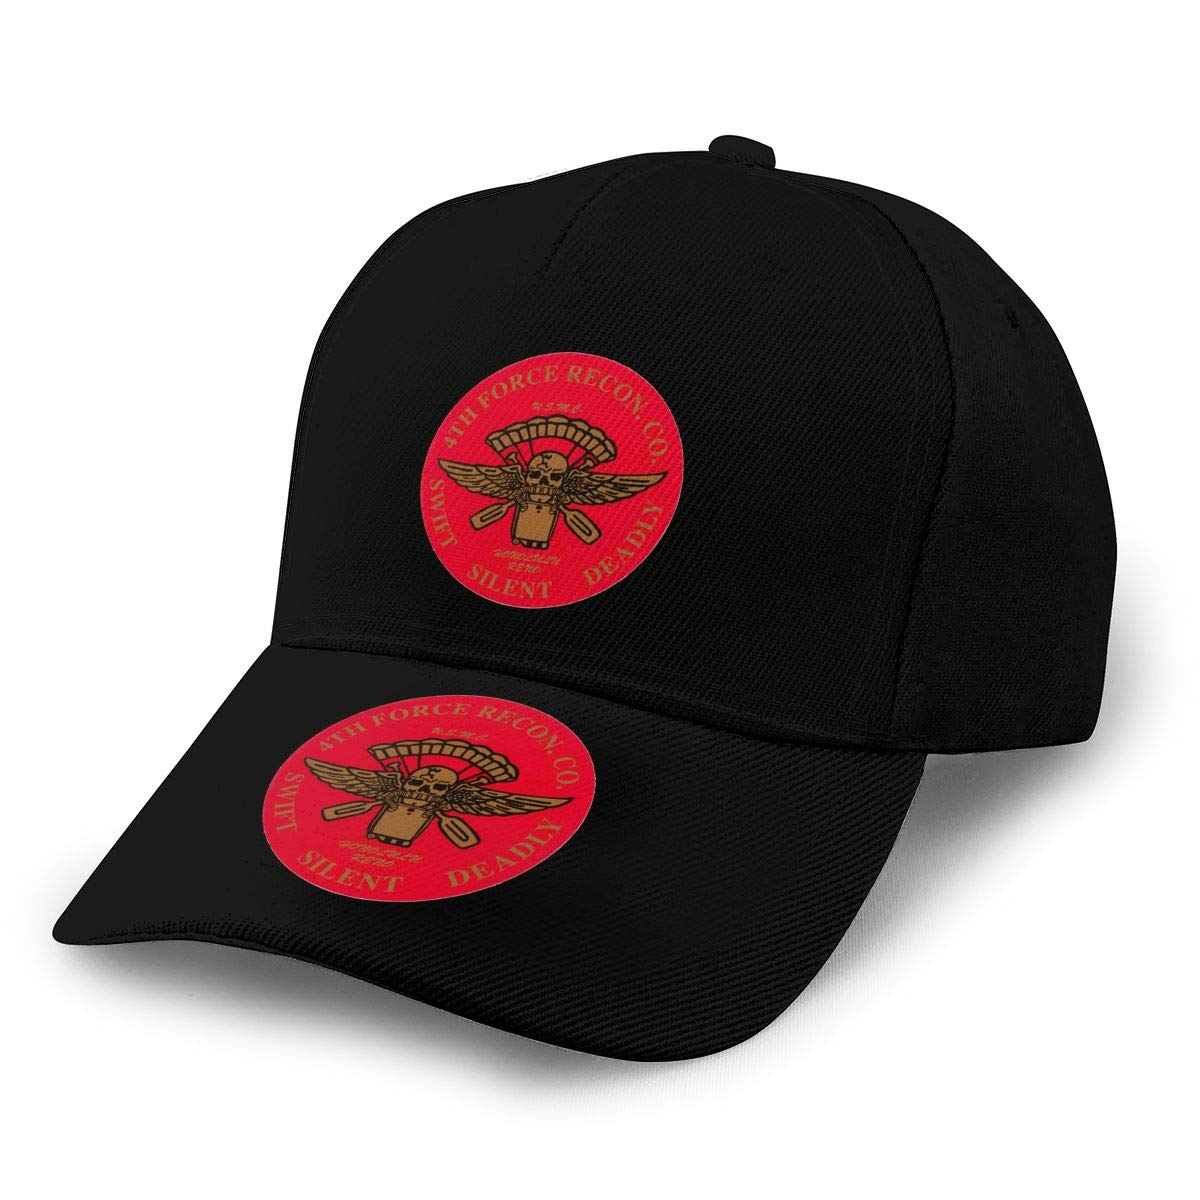 4th Force Reconnaissance Company Insignia Unisex Adult Hats Classic Baseball Caps Peaked Cap